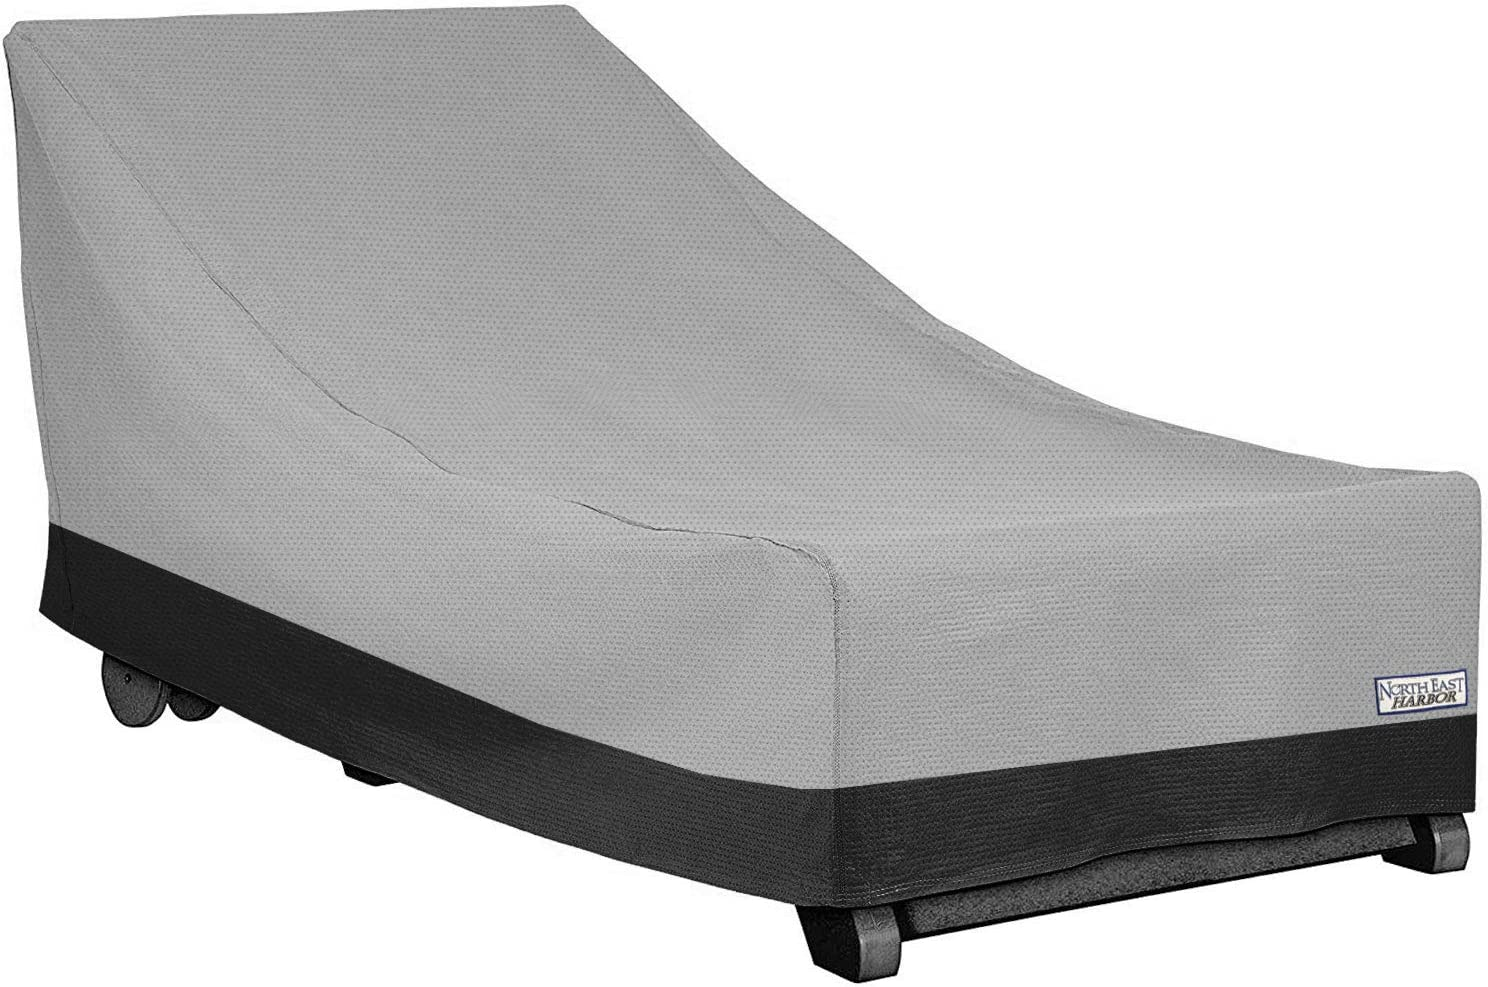 - Amazon.com : North East Harbor Outdoor Patio Chaise Lounge Chair Furniture  Cover - 74